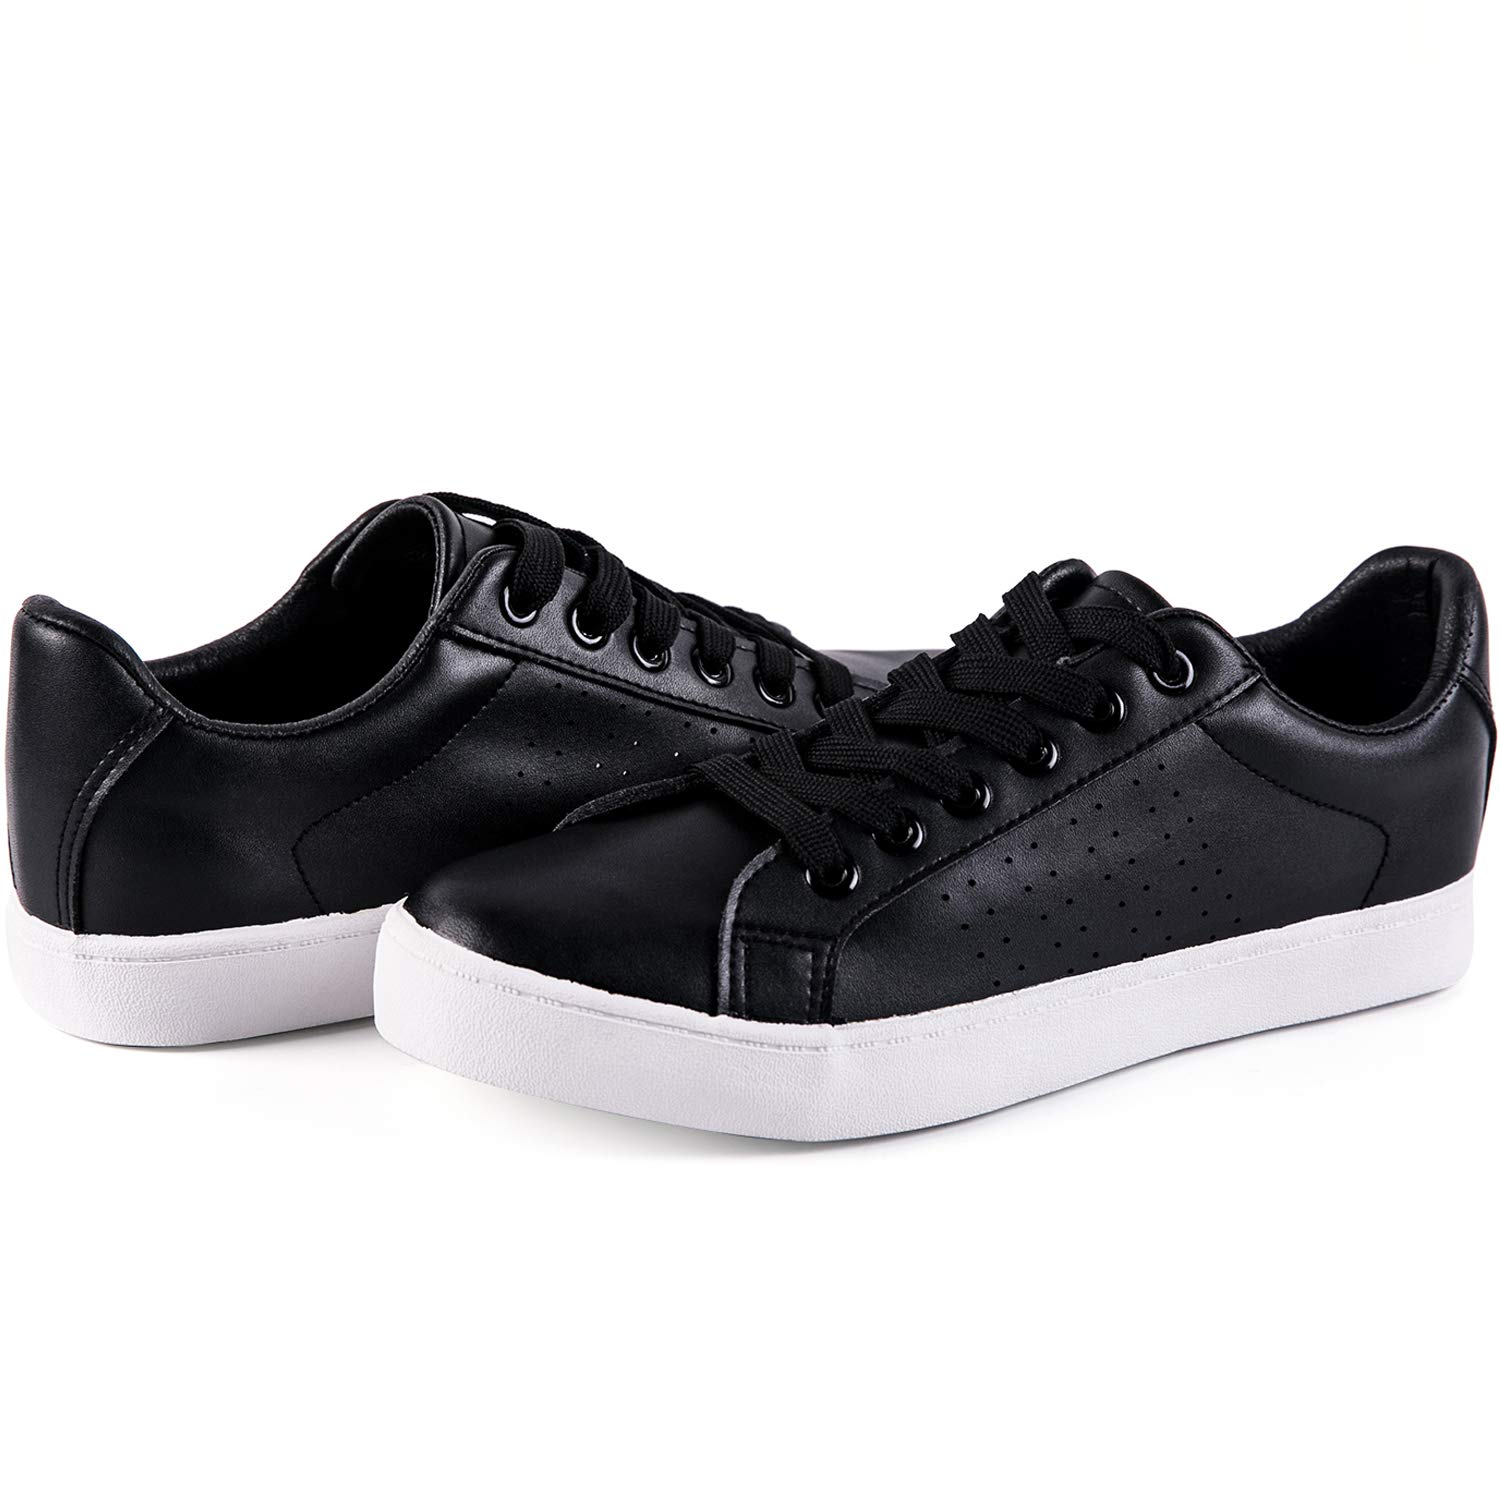 Synthetic Leather - Black Lantina Women's Low Top Fashion Sneakers